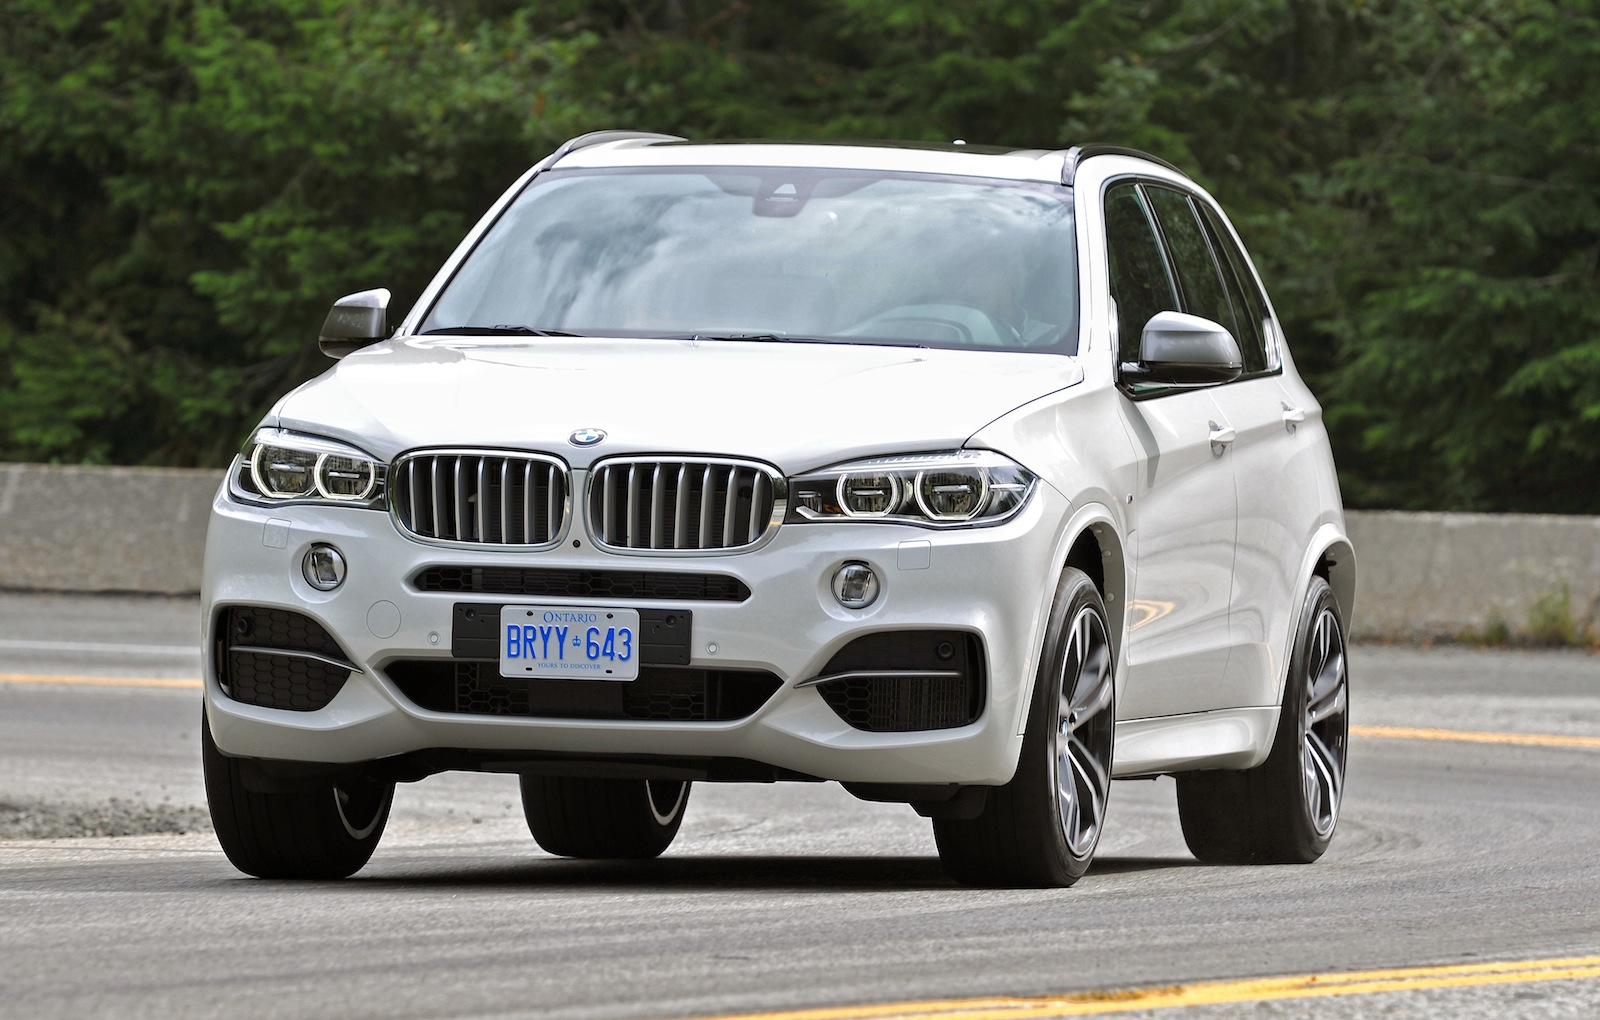 2014 bmw x5 pricing and specifications photos 1 of 10